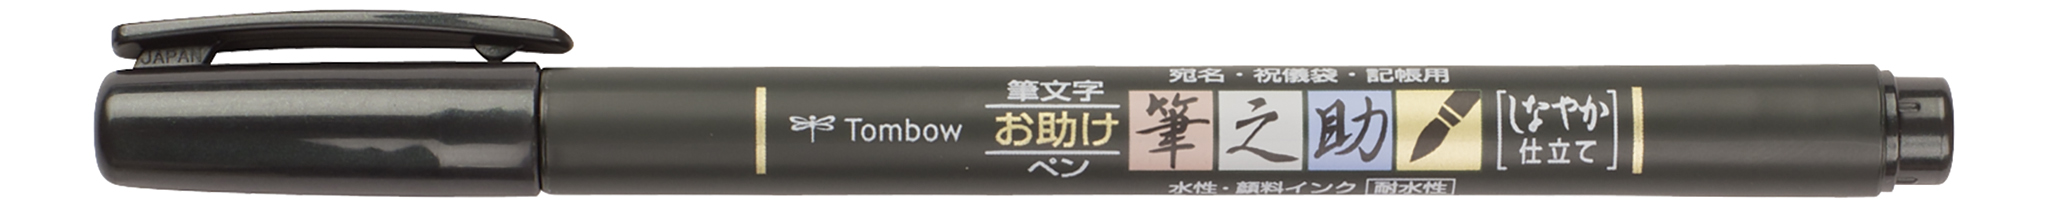 Tombow Brush Pen Fudenosuke Soft Black